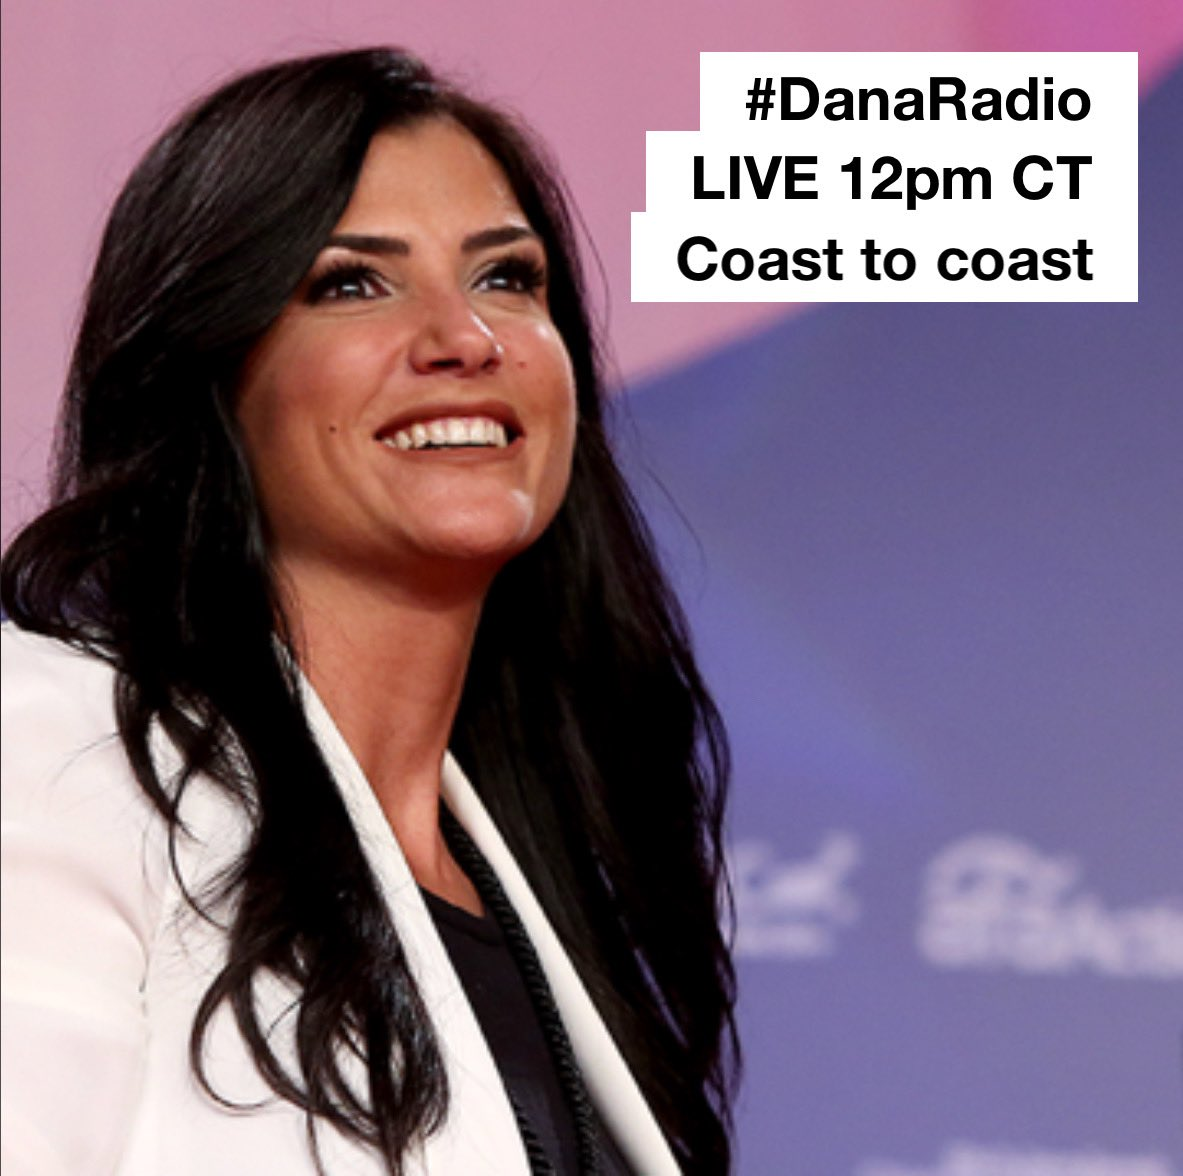 On air now. Discussing POTUS' call for a national emergency re the border off the top. Listen live on stations around the country, stream at https://t.co/AI5fToPM2X , or subscribe to the podcast: https://t.co/uhlxckV7aO  #DanaRadio